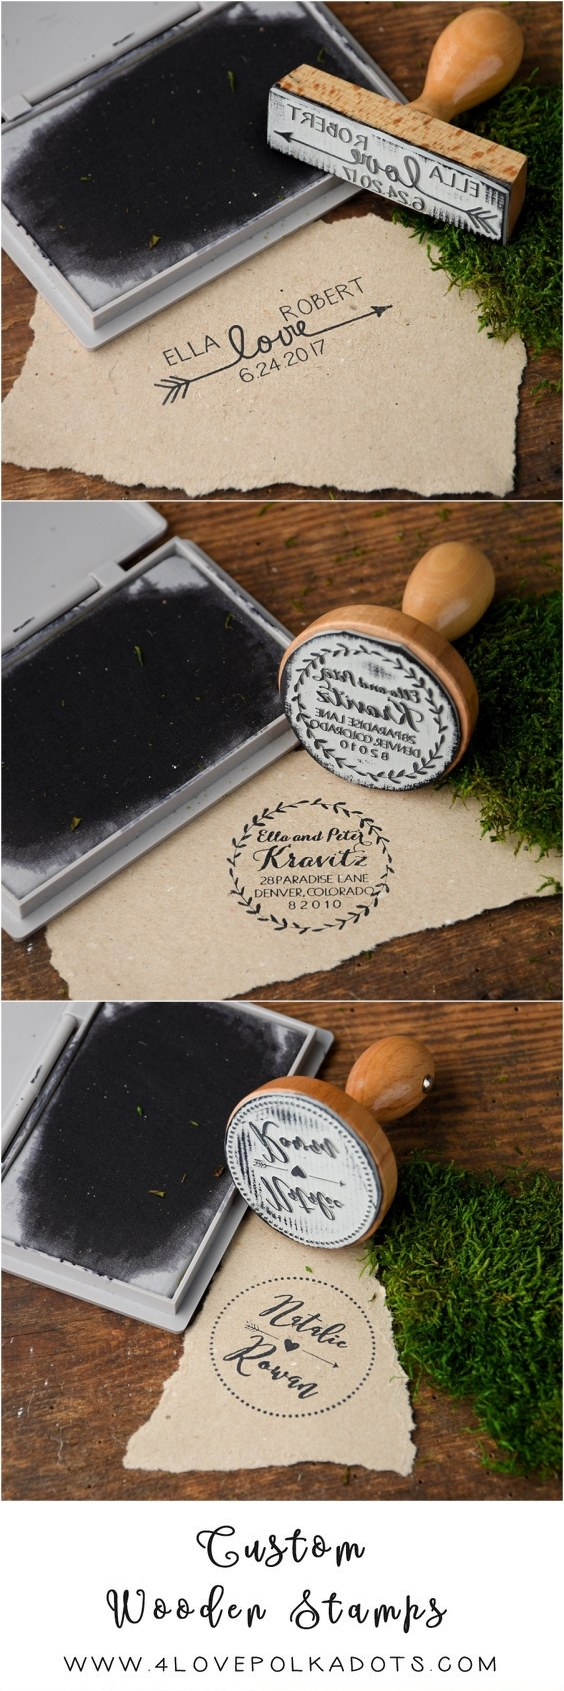 Wooden Wedding Custom Stamps Personalized With Your Names And Date